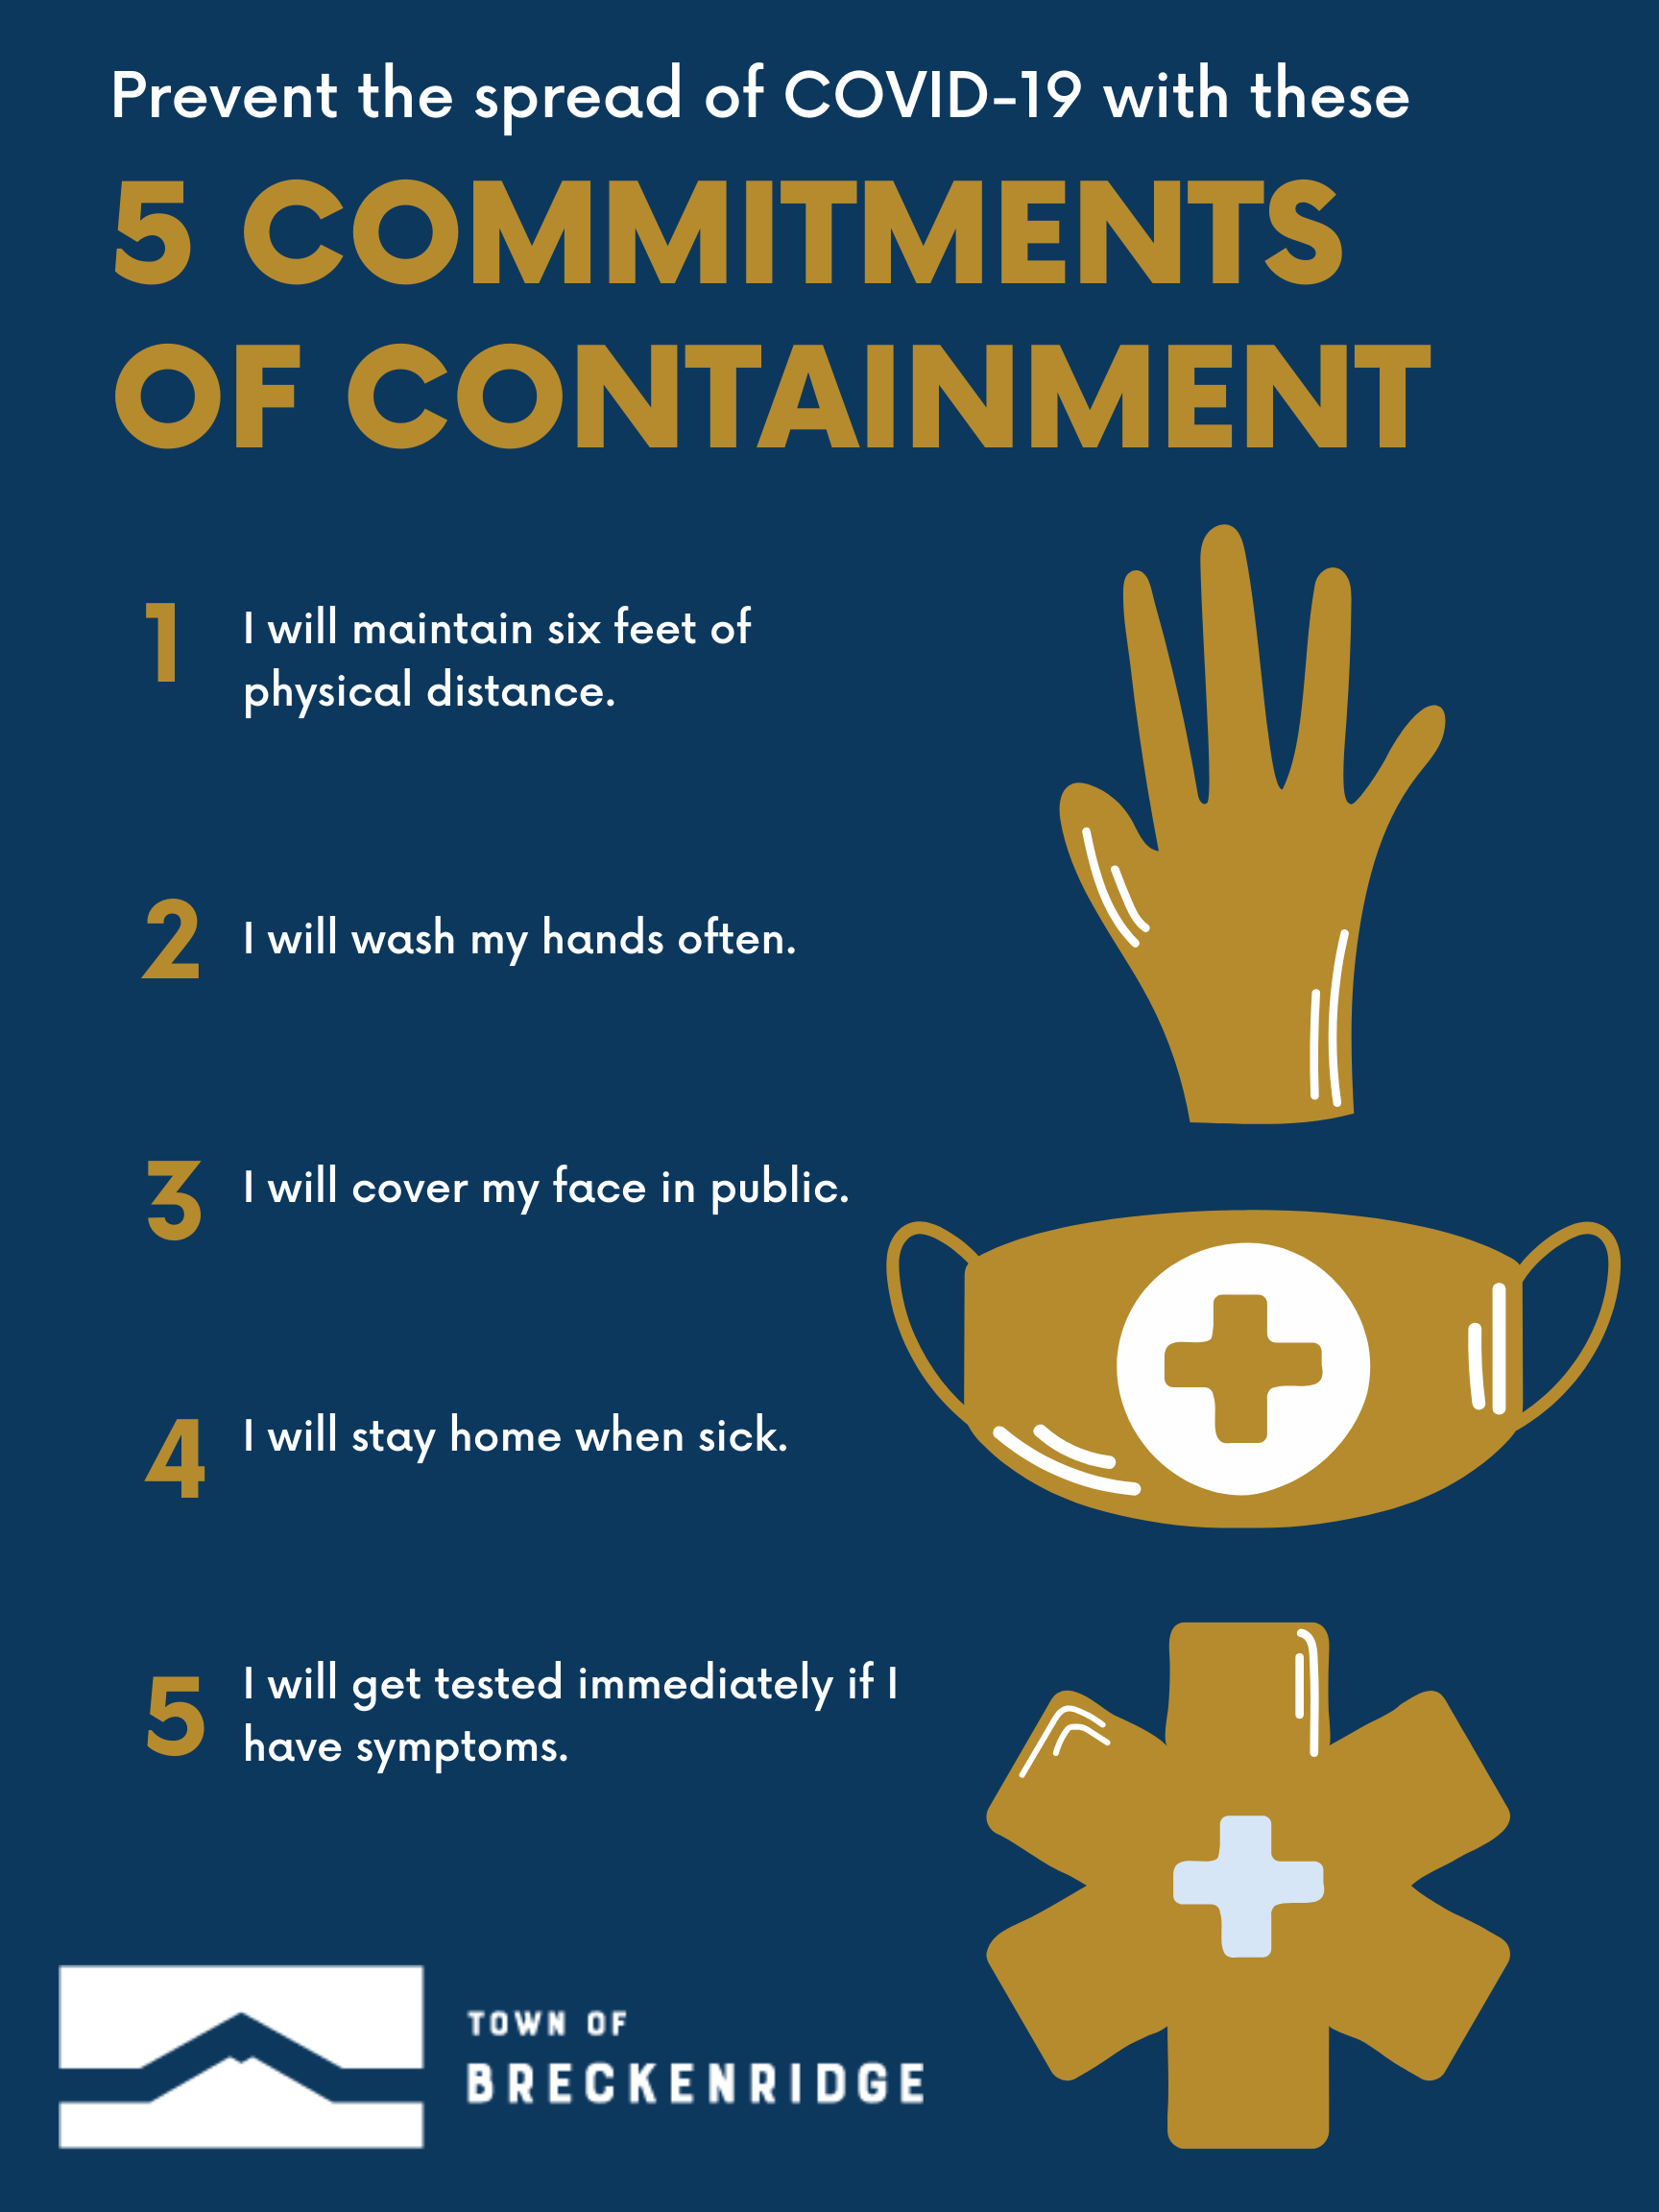 Prevent the spread of COVID-19 with these 5 Commitments of Containment